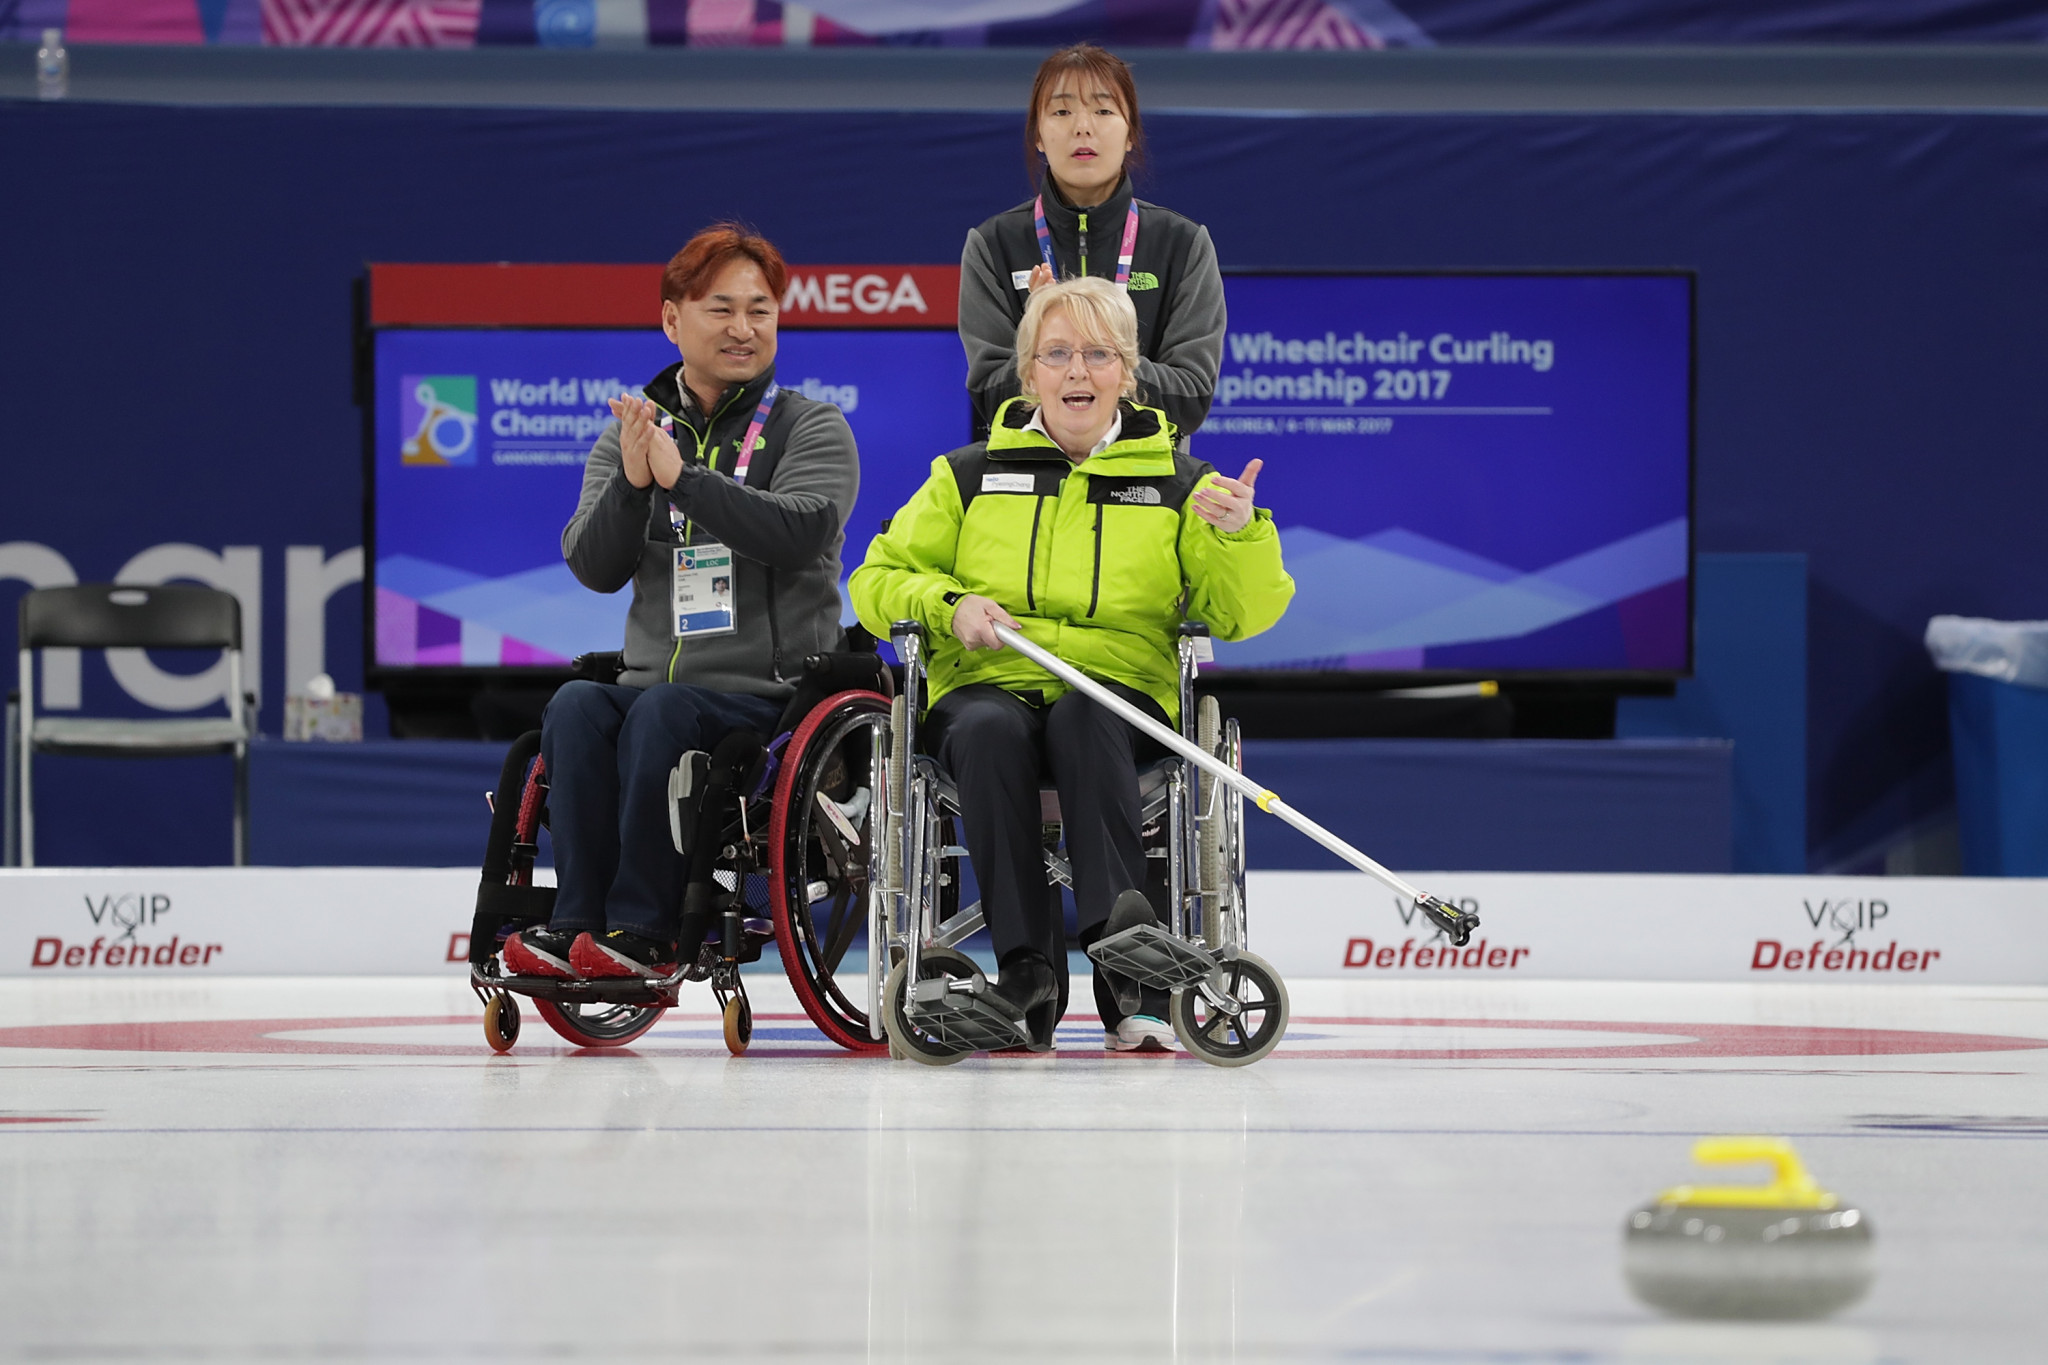 Wheelchair curling marked the lowest percentage of sales for the Pyeongchang 2018 Paralympics at 0.09 per cent ©Getty Images